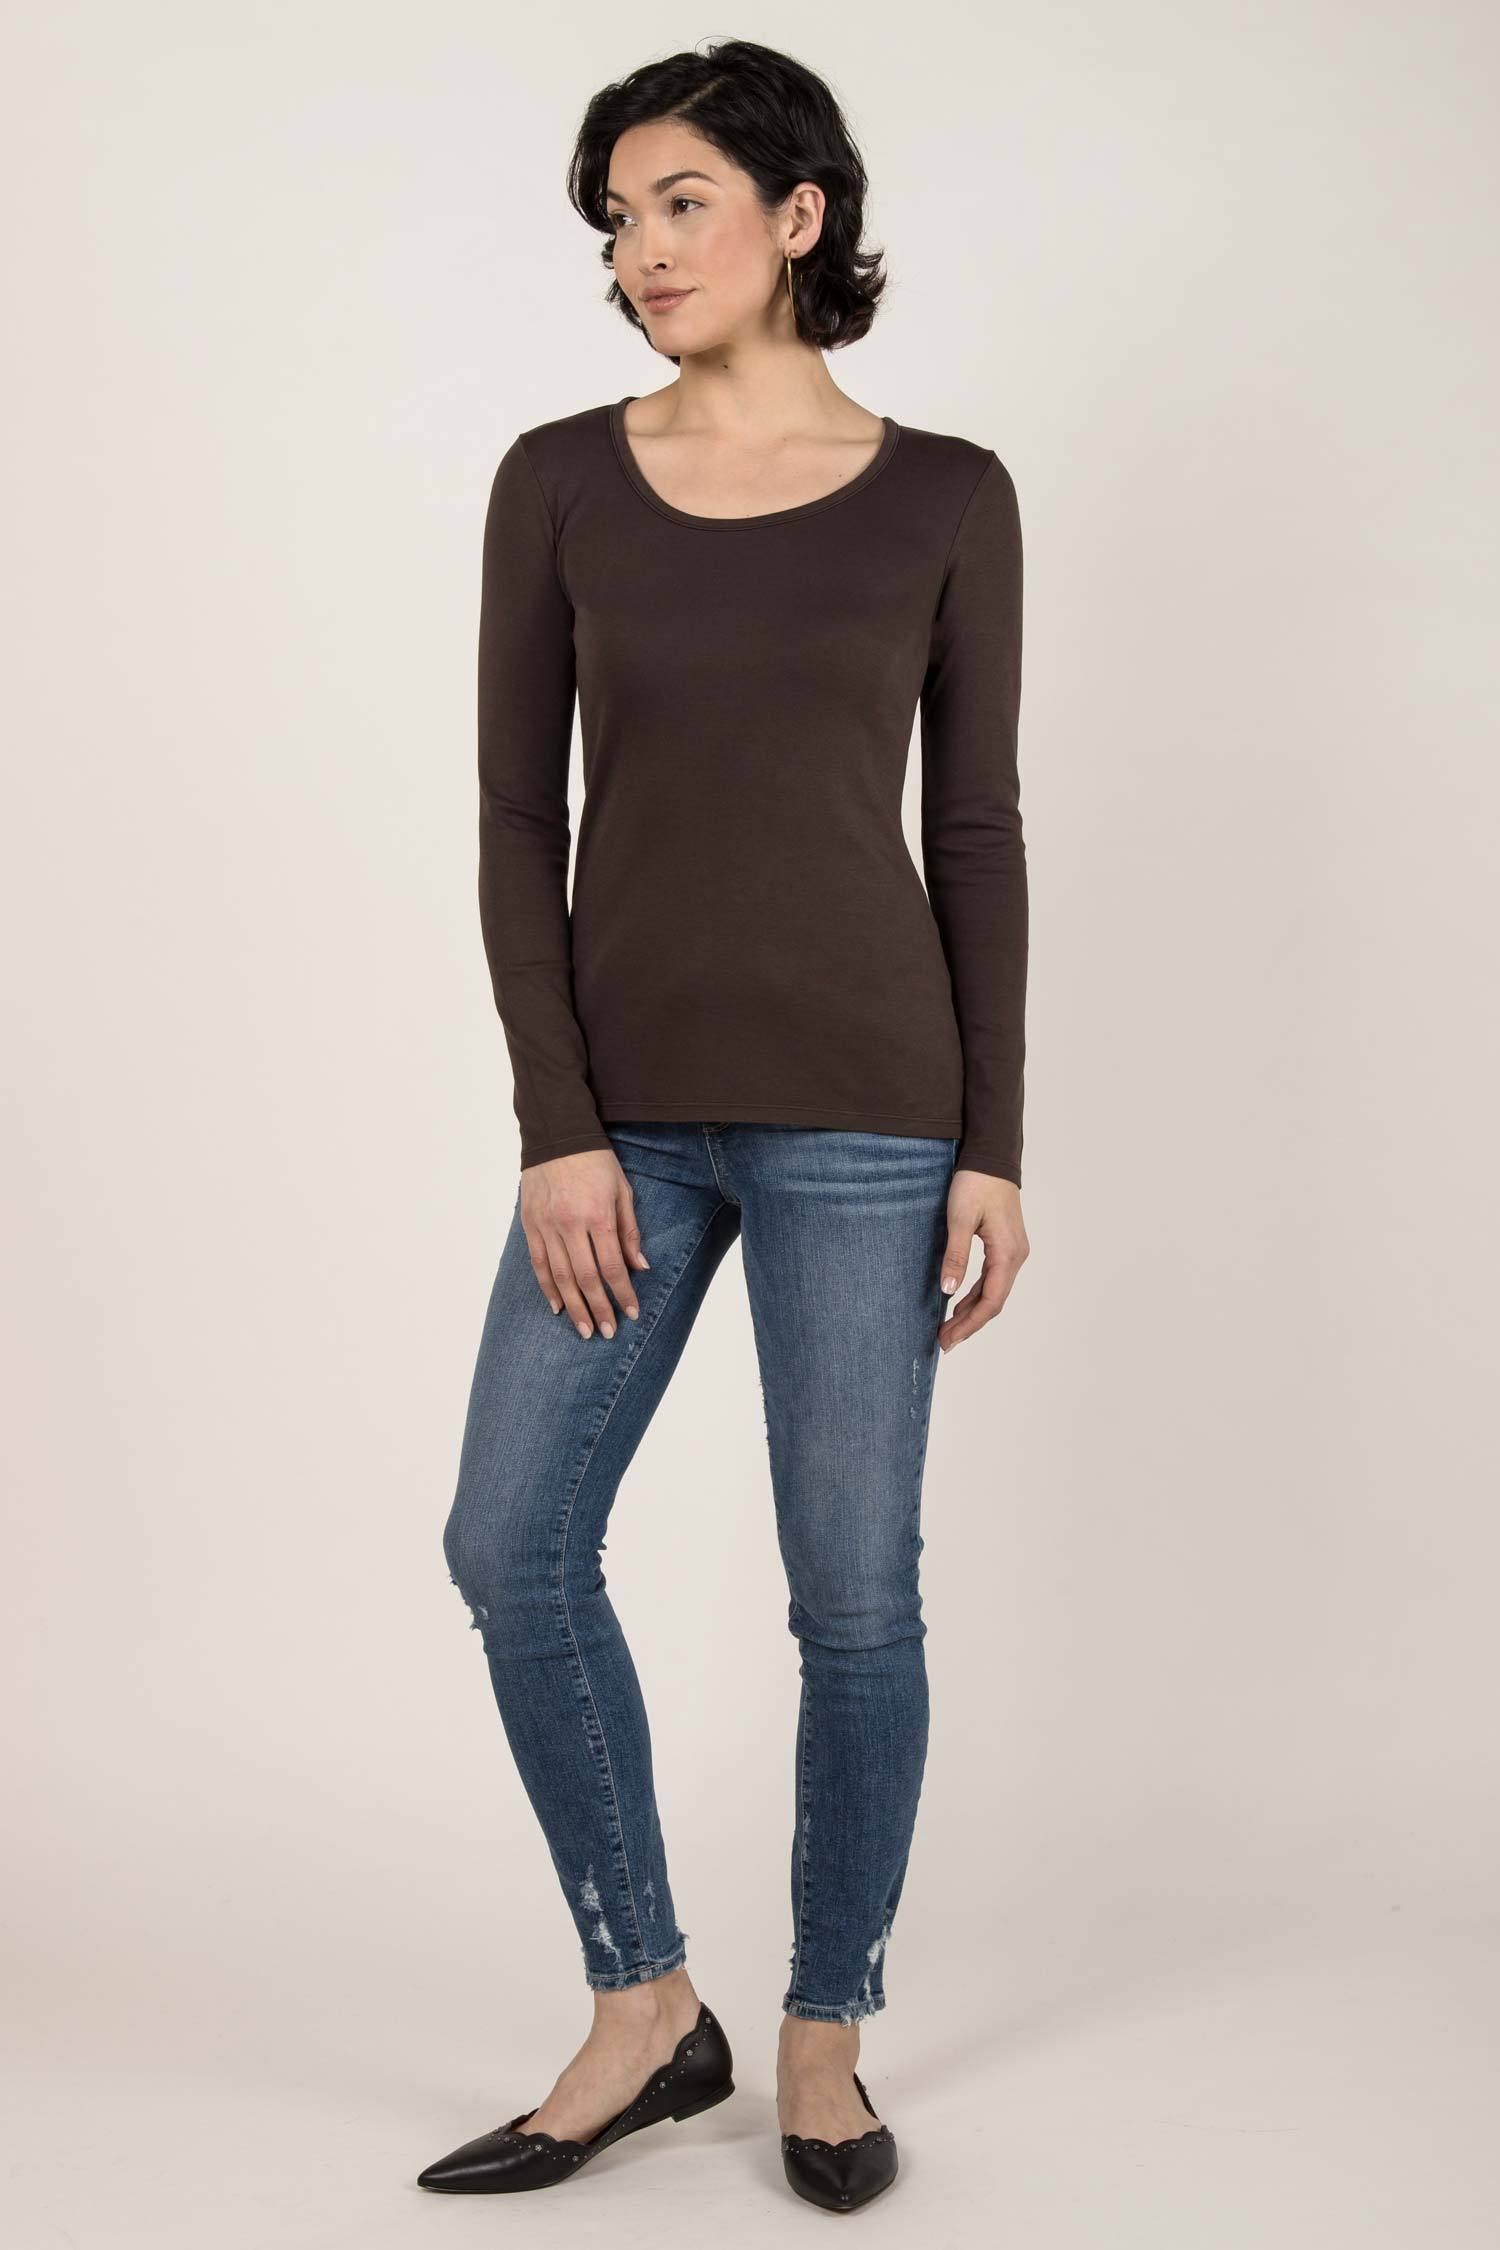 Womens Organic Cotton Top | Essential Long Sleeve Scoop Tee